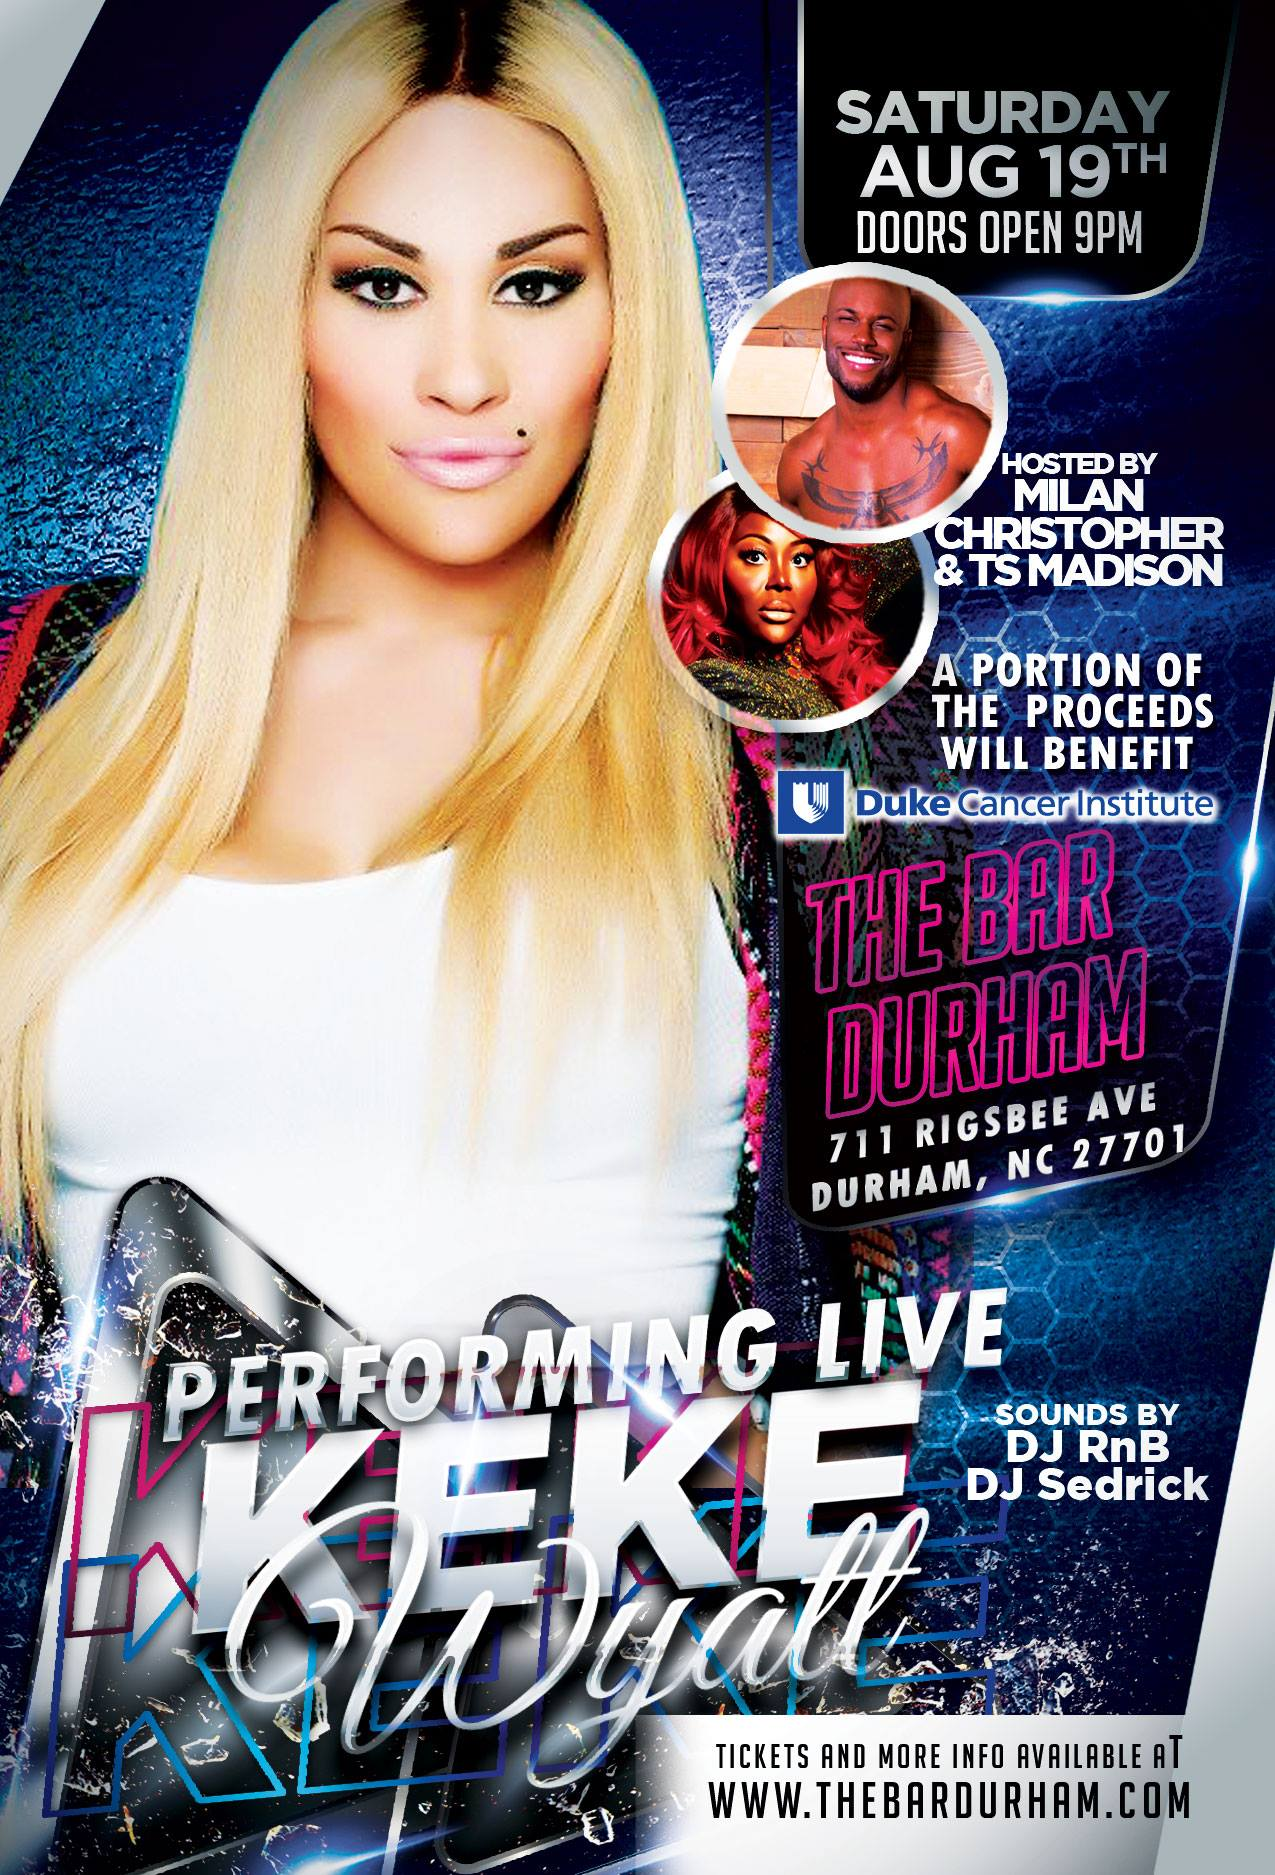 KEKE WYATT PERFORMING LIVE